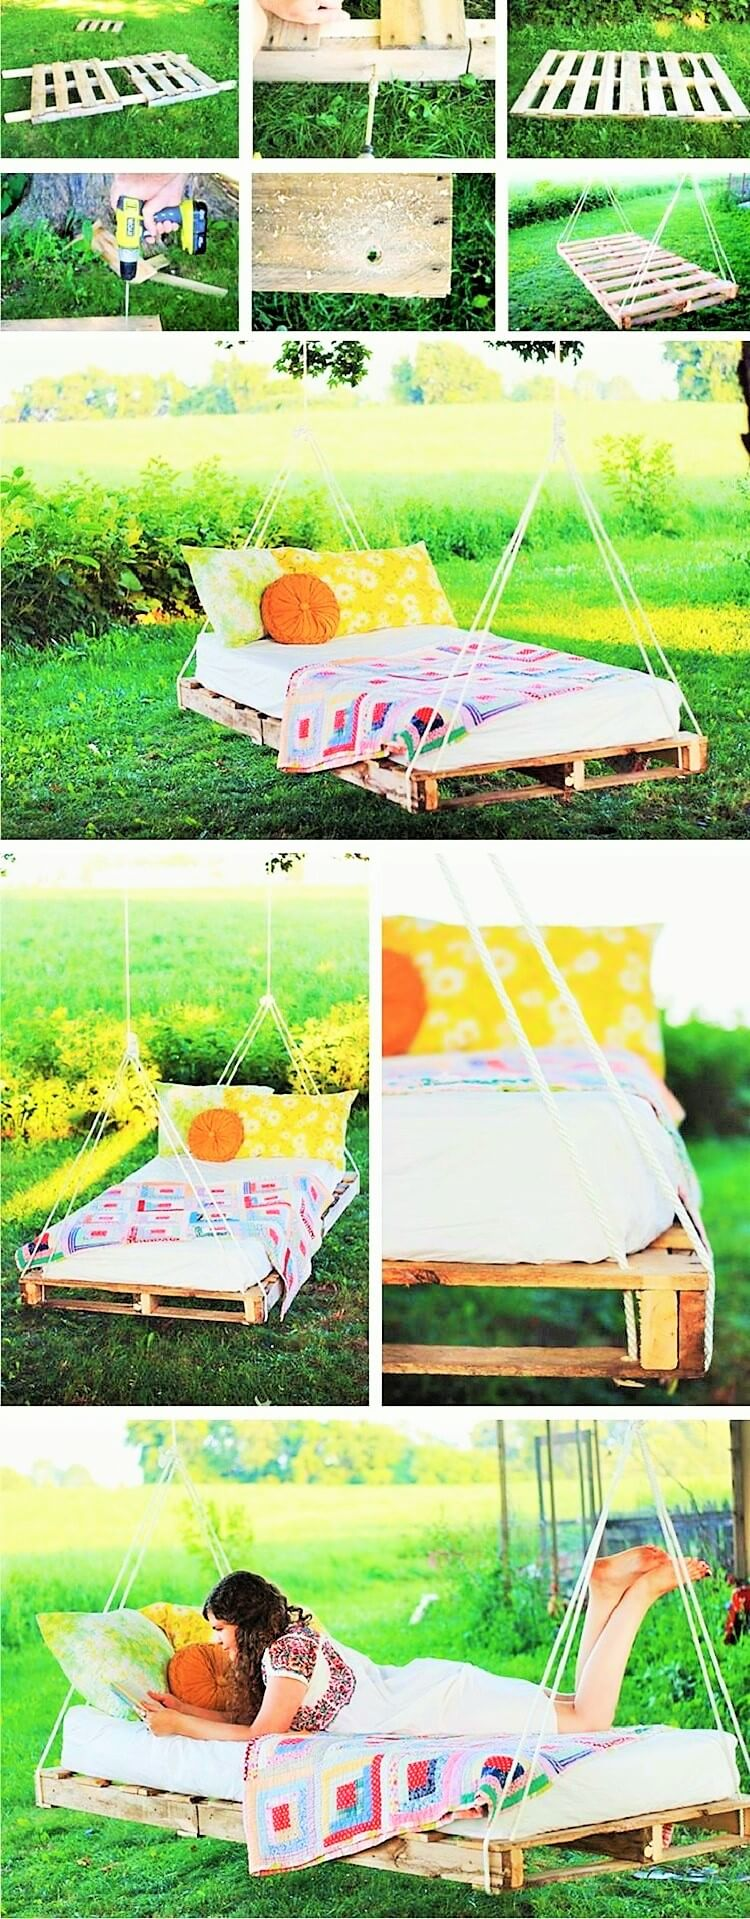 DIY-recycled-pallet-bench-project-3 (3)